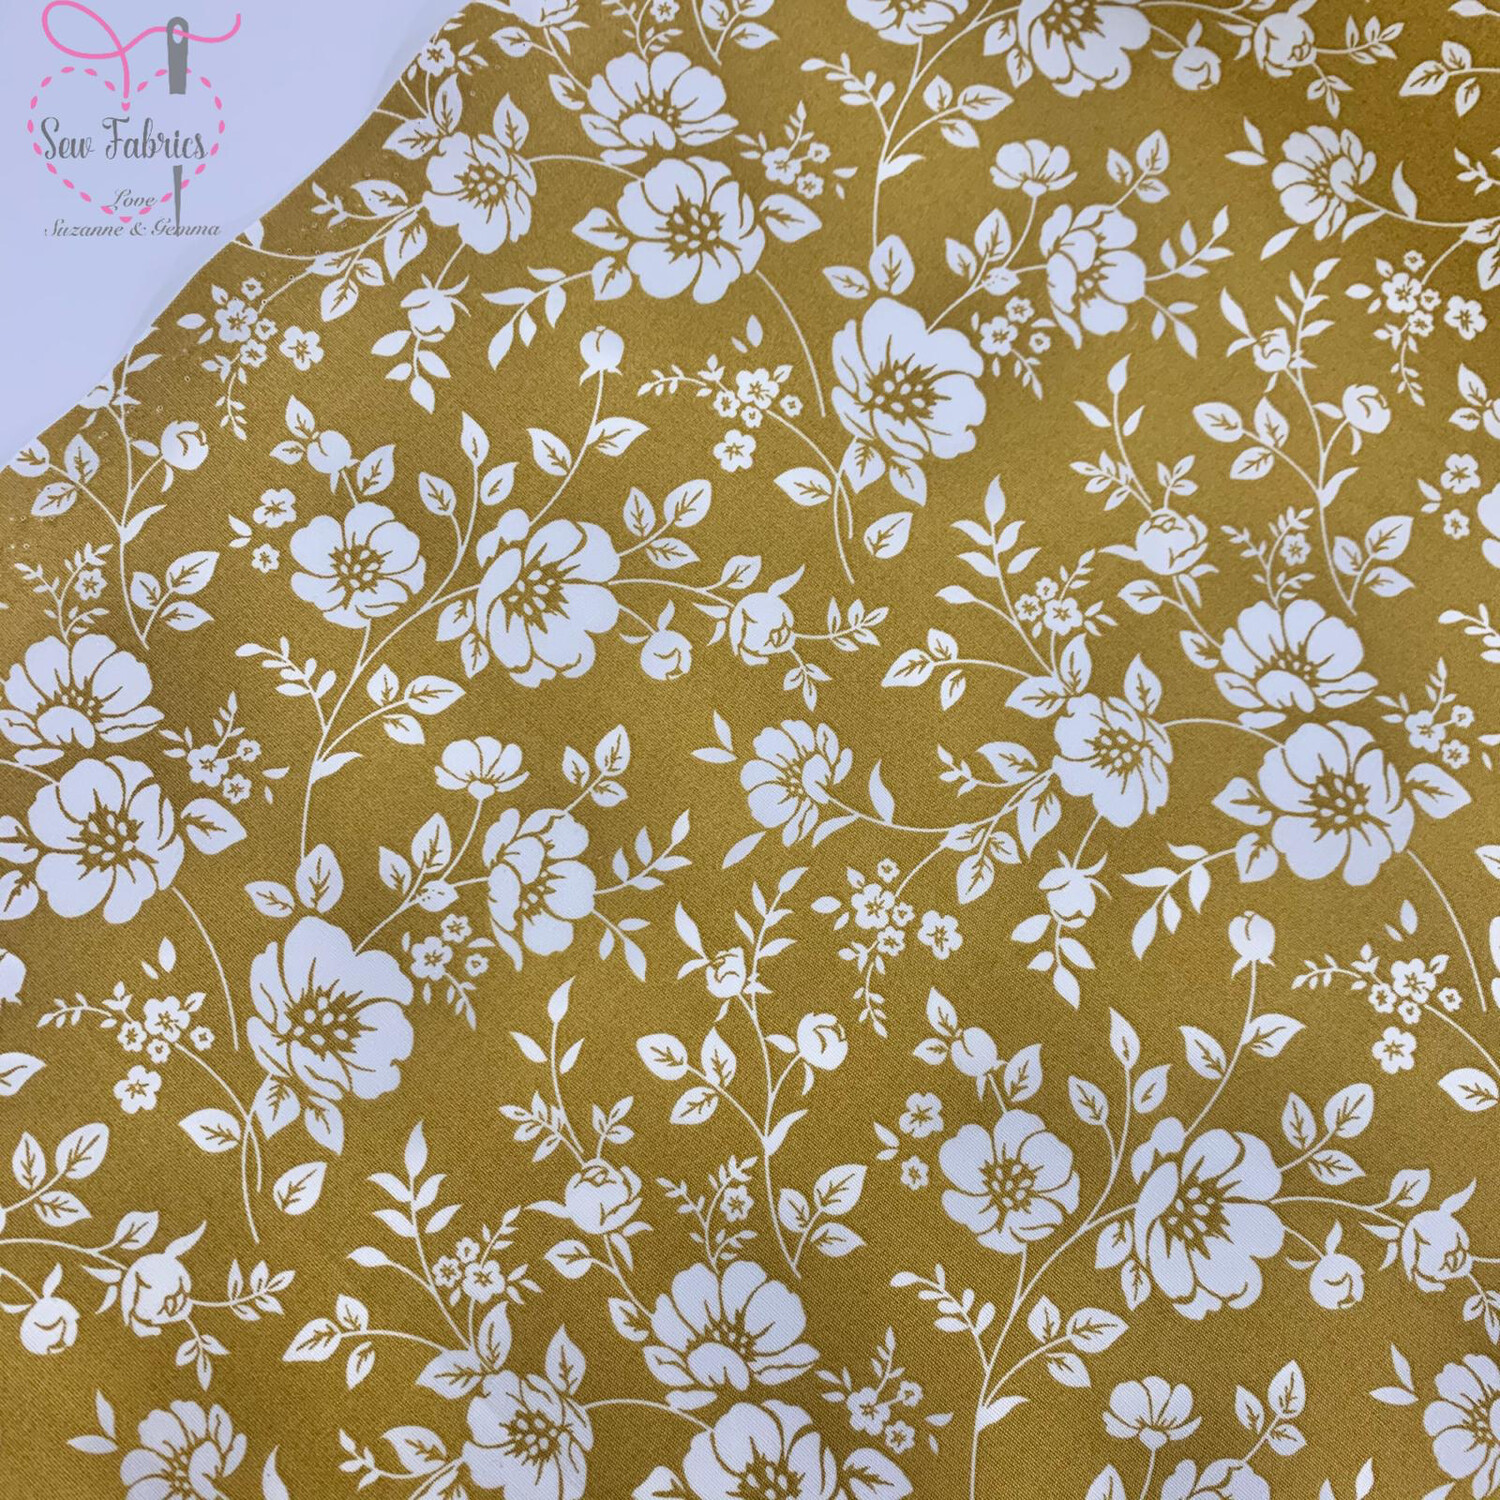 Rose &  Hubble Ochre Ivory Bold Floral Fabric, 100% Cotton Poplin Mustard Yellow Material